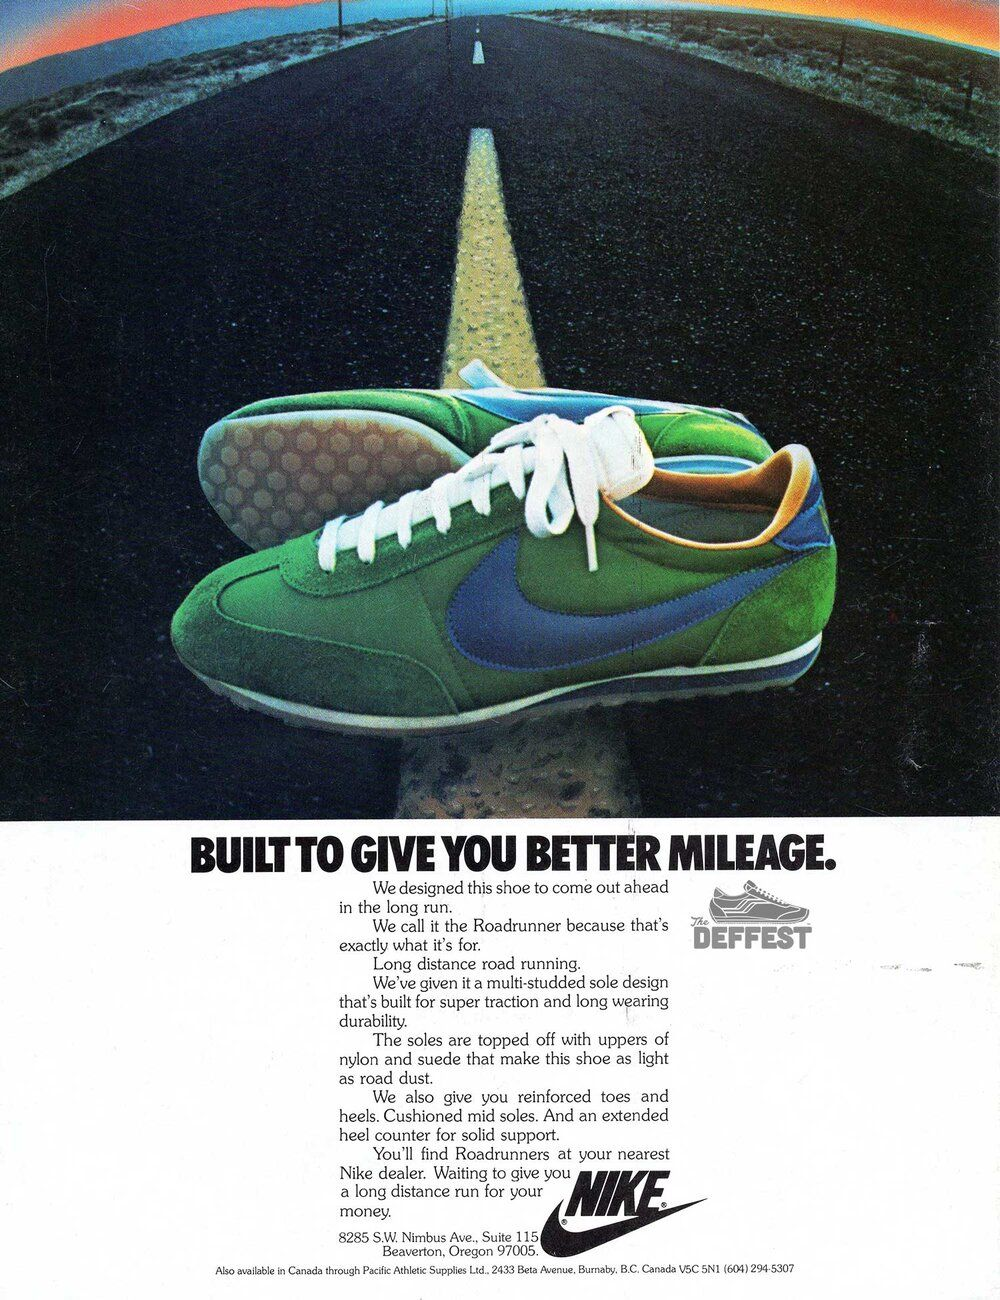 Pin On Vintage Sneaker Ads